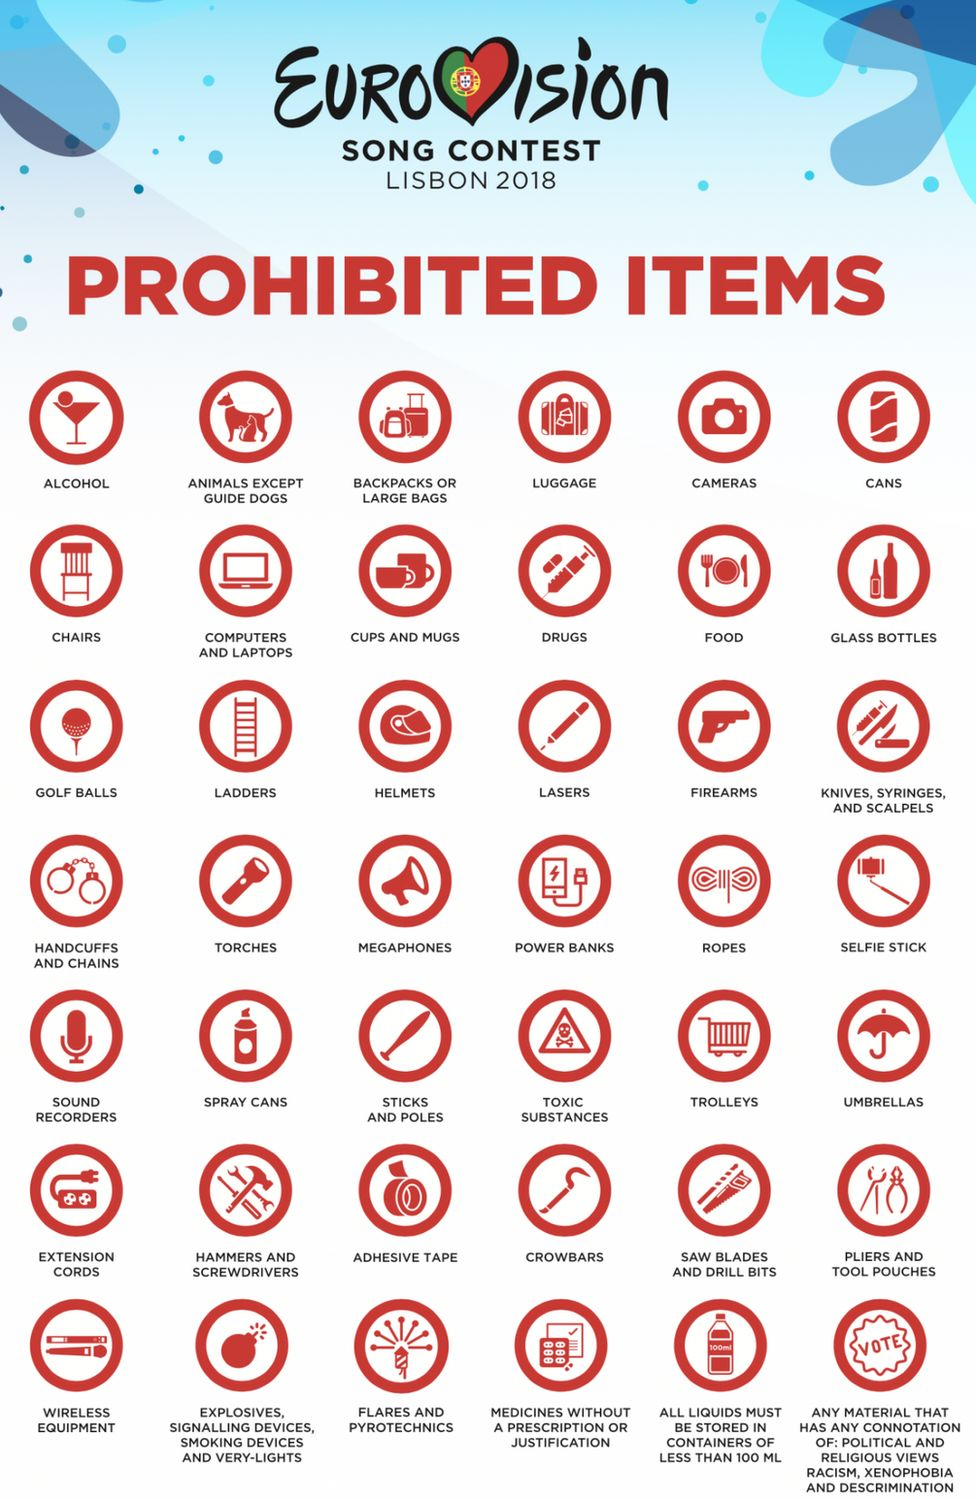 A list of banned items